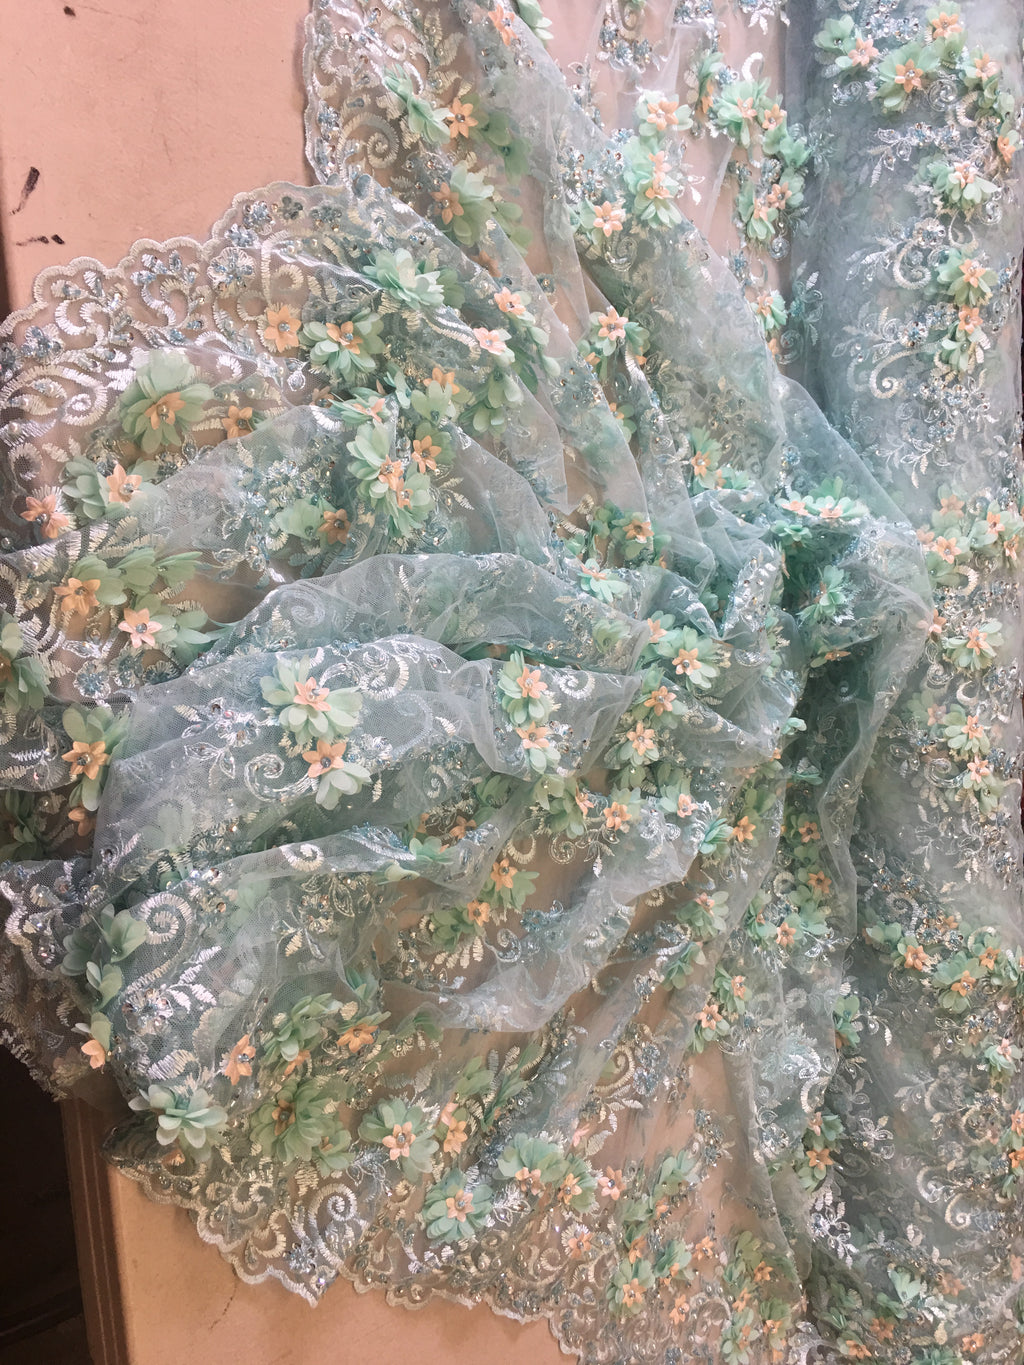 Mint/Aqua Floral Fabric 3D Flower Bridal Beaded Fabric Heavy Embroidered Mesh Dress For Wedding Veil By The Yard